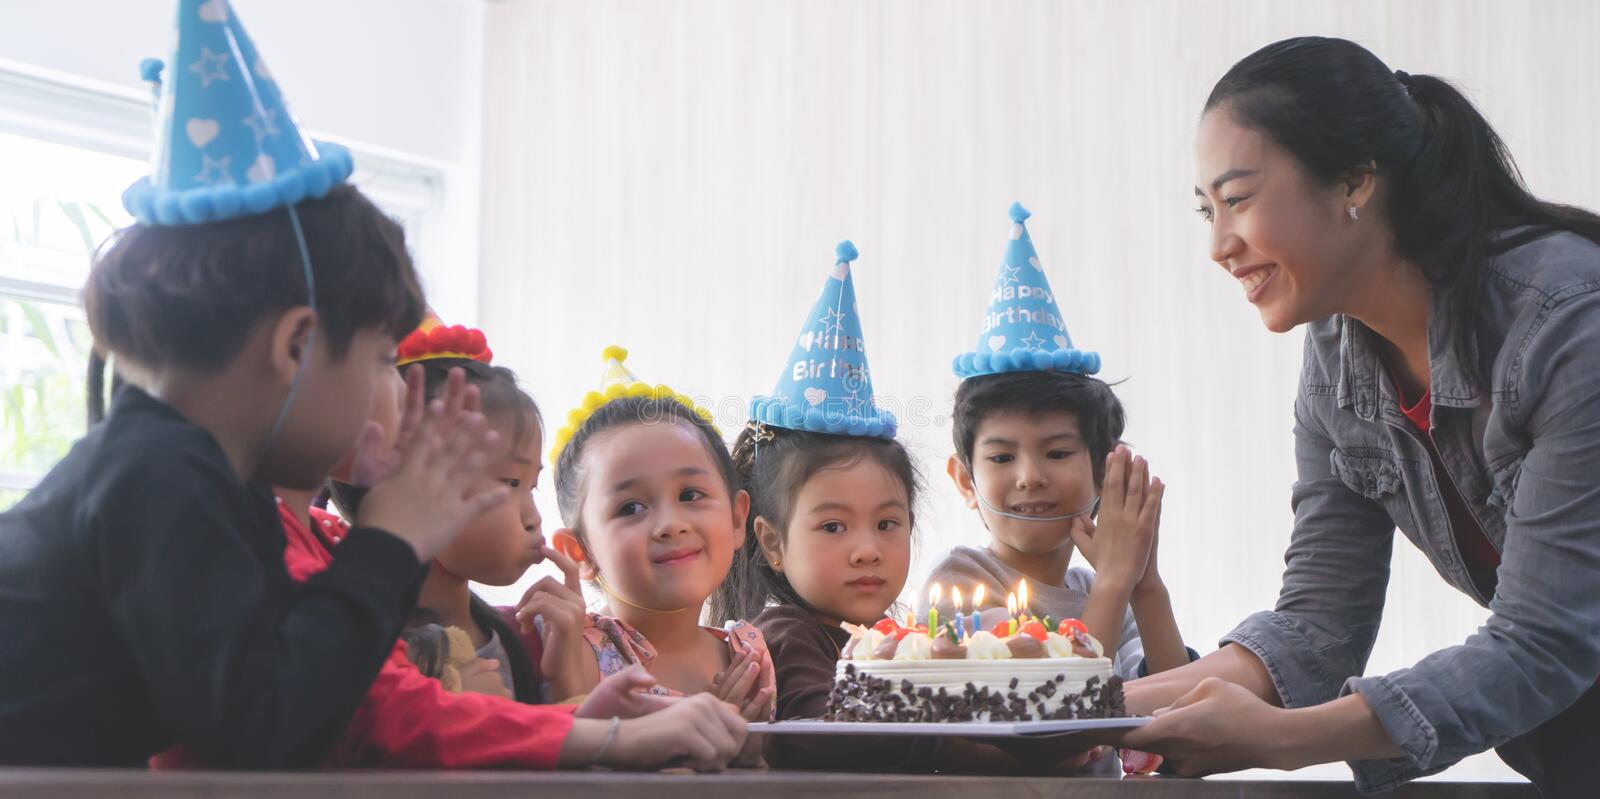 Group of kid friends waiting to blow birthday cake royalty free stock photo